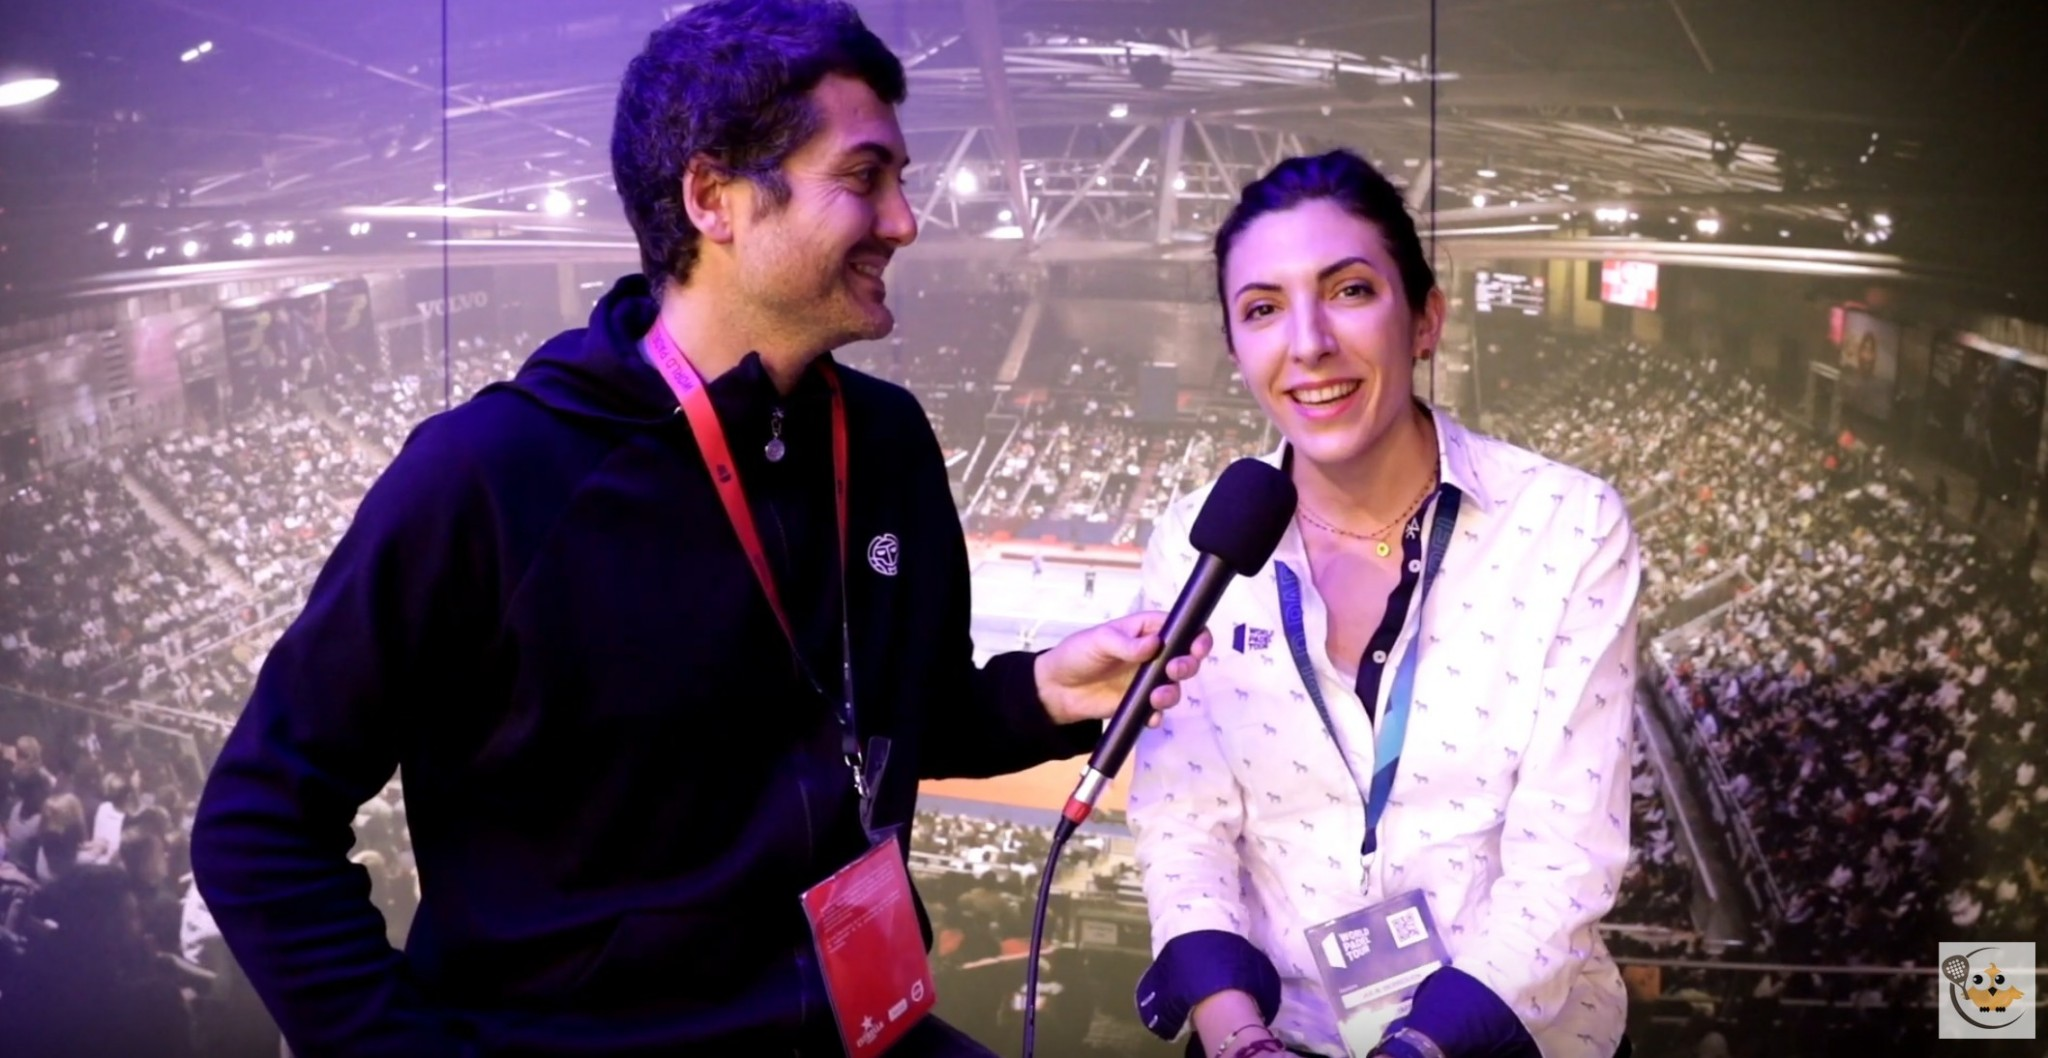 Julie Derrough : Les coulisses du World Padel Tour